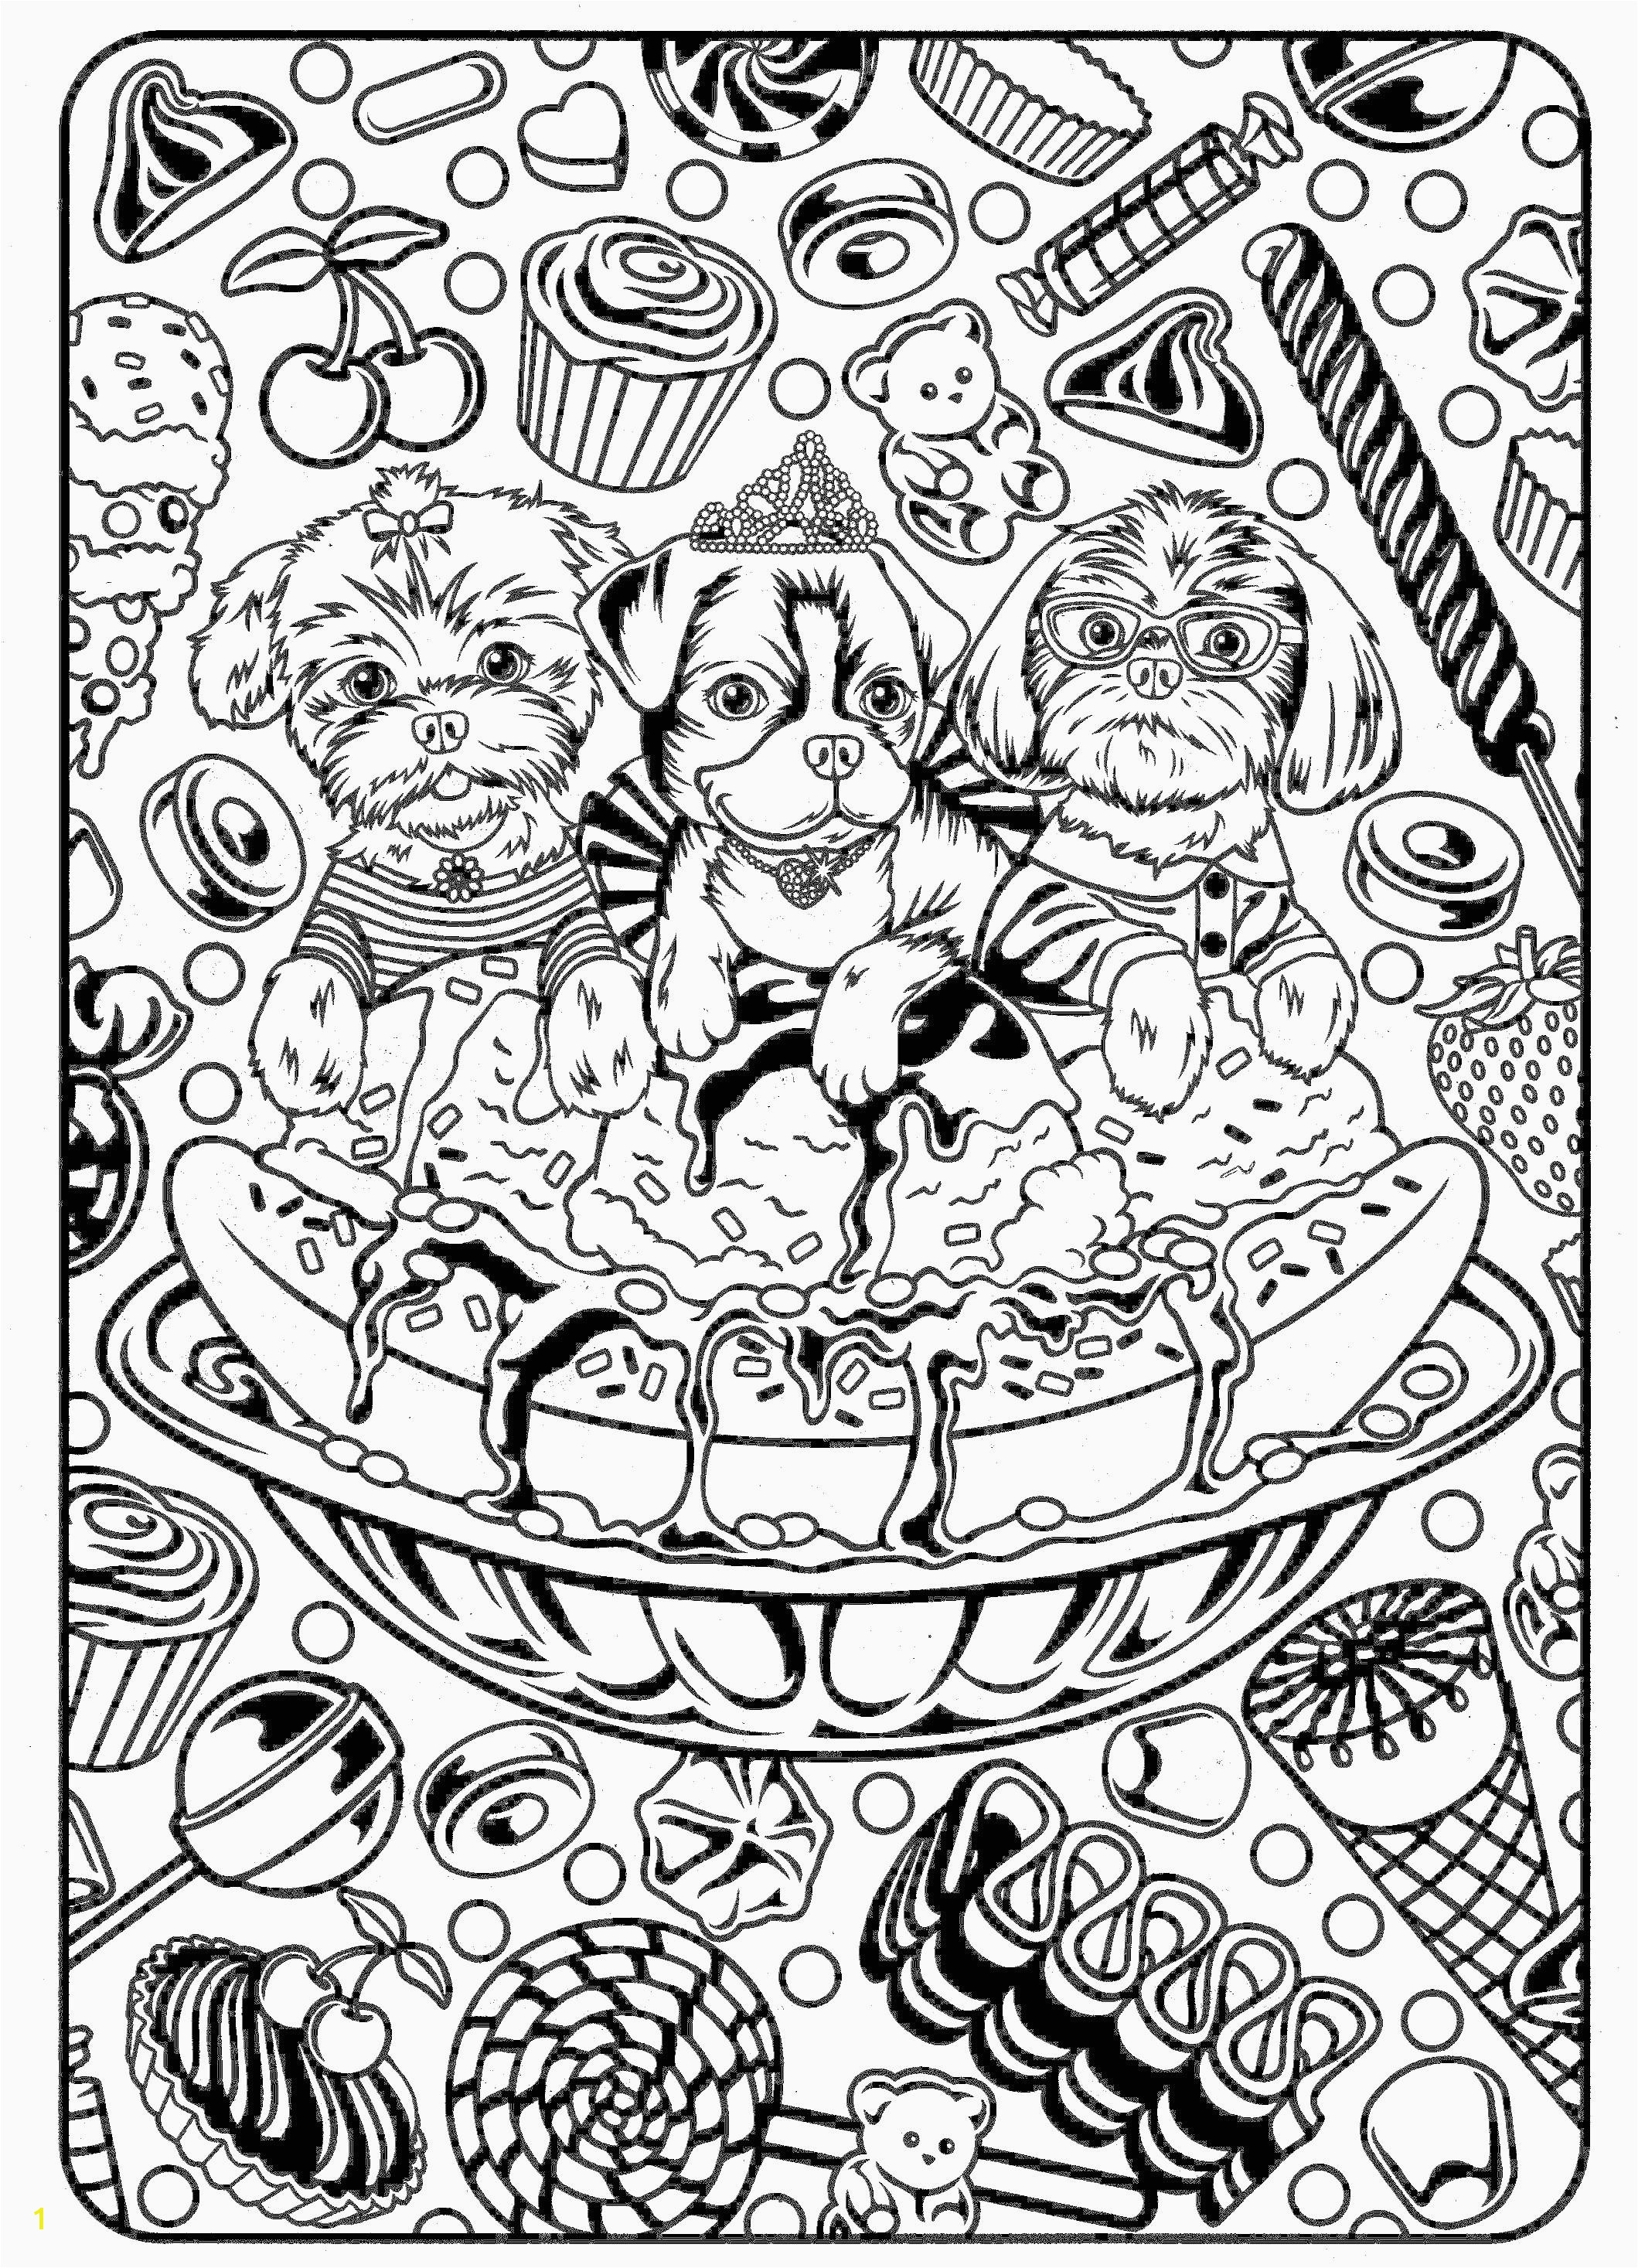 Free Printable Summer Coloring Pages for Kids Unique Neverending Story Coloring Pages Coloring Pages Coloring Pages